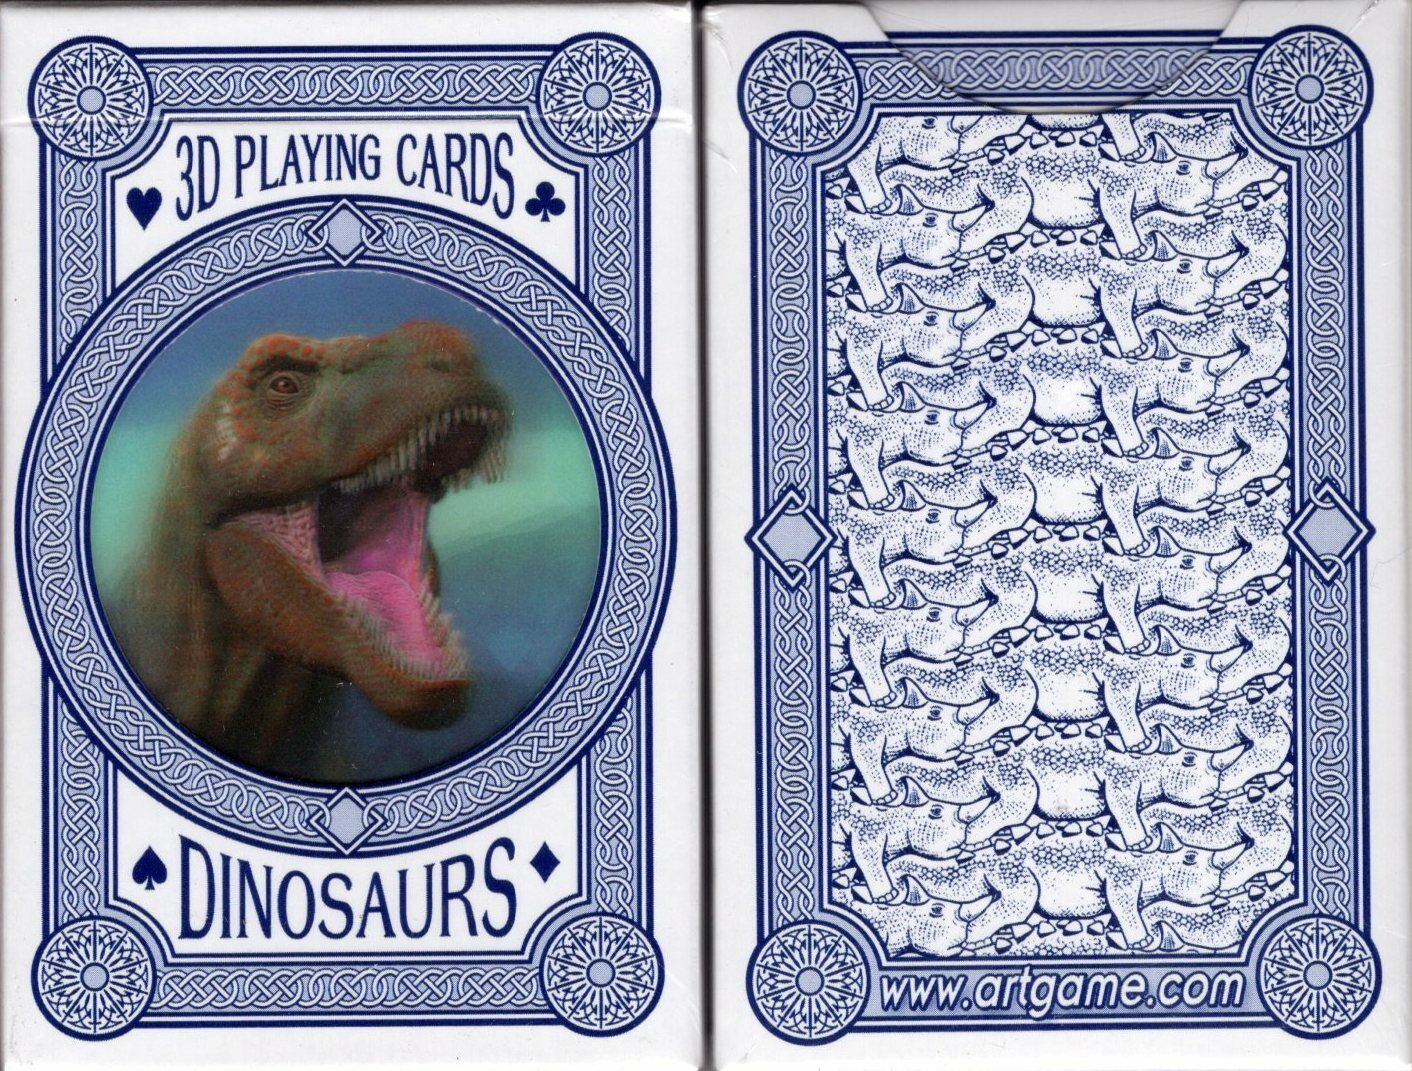 3D Dinosaurs Playing Cards Bridge Size Plastic Deck Artgame Custom Limited New